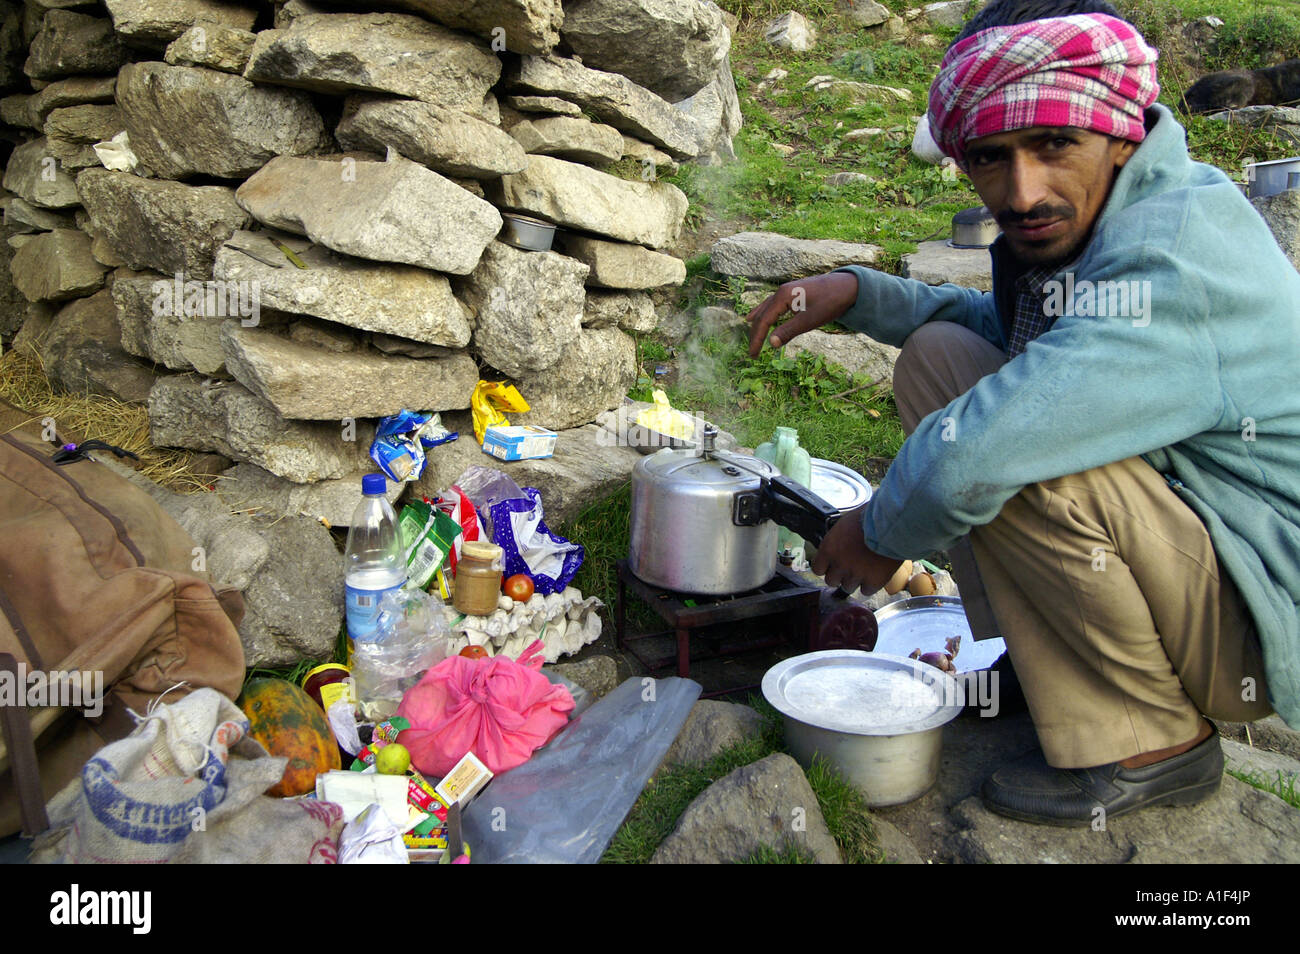 Indian man cooking outdoors in pressure cooker - Stock Image